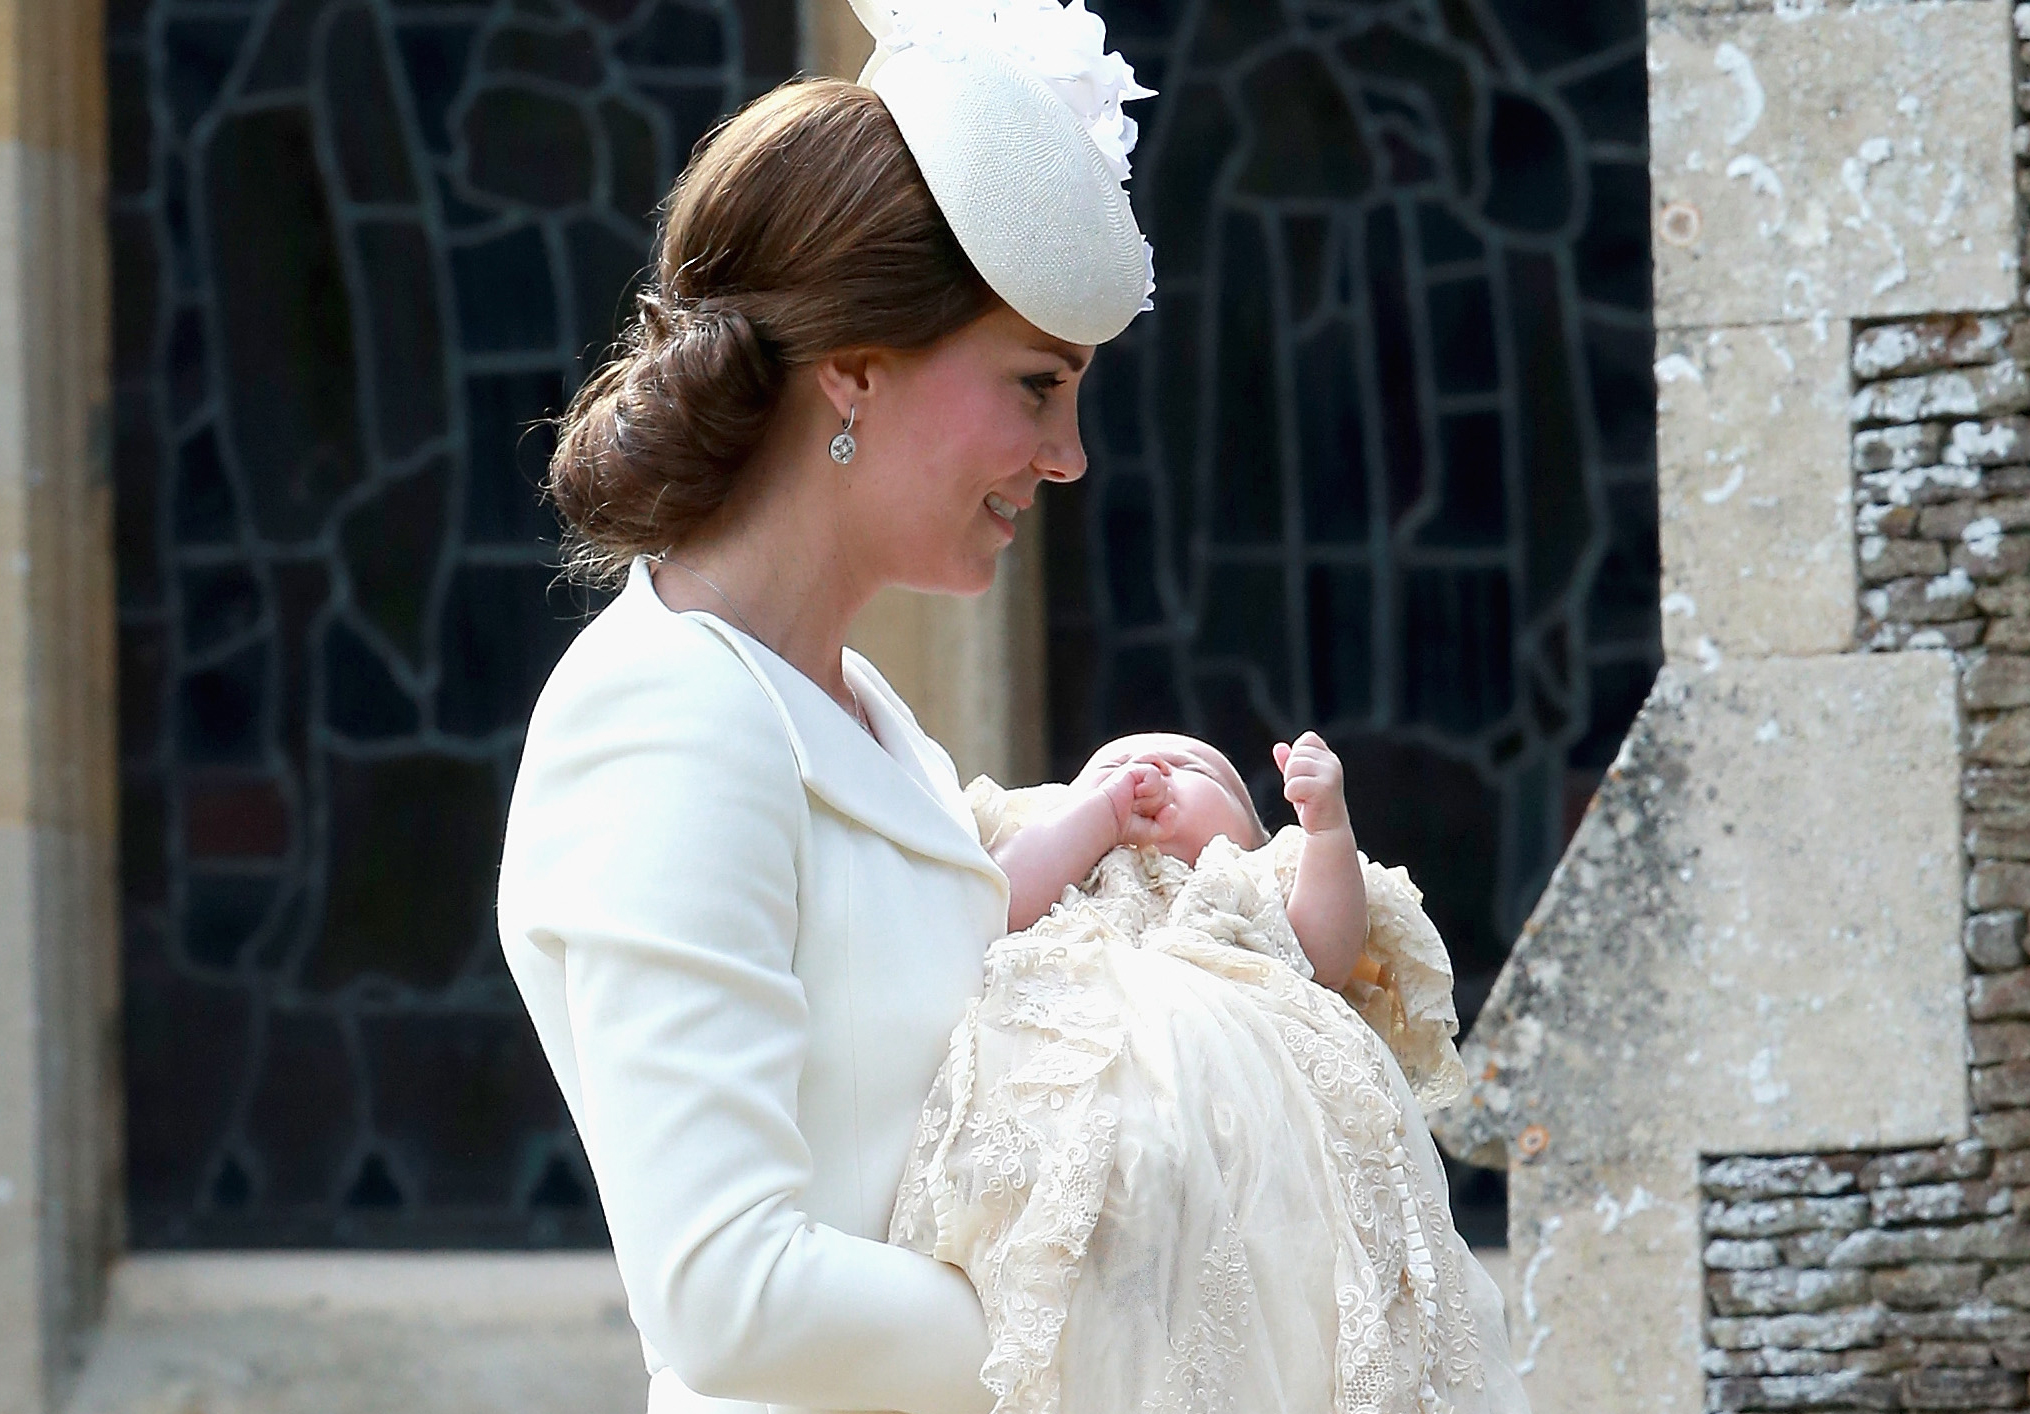 Catherine-Duchess-of-Cambridge-and-Princess-Charlotte-of-Cambridge-arrive-at-the-Church-of-St-Mary-Magdalene-on-the-Sandringham-Estate-for-the-Christening-of-Princess-Charlotte-of-Cambridge-on-July-5-2015-in-King's-Lynn-England